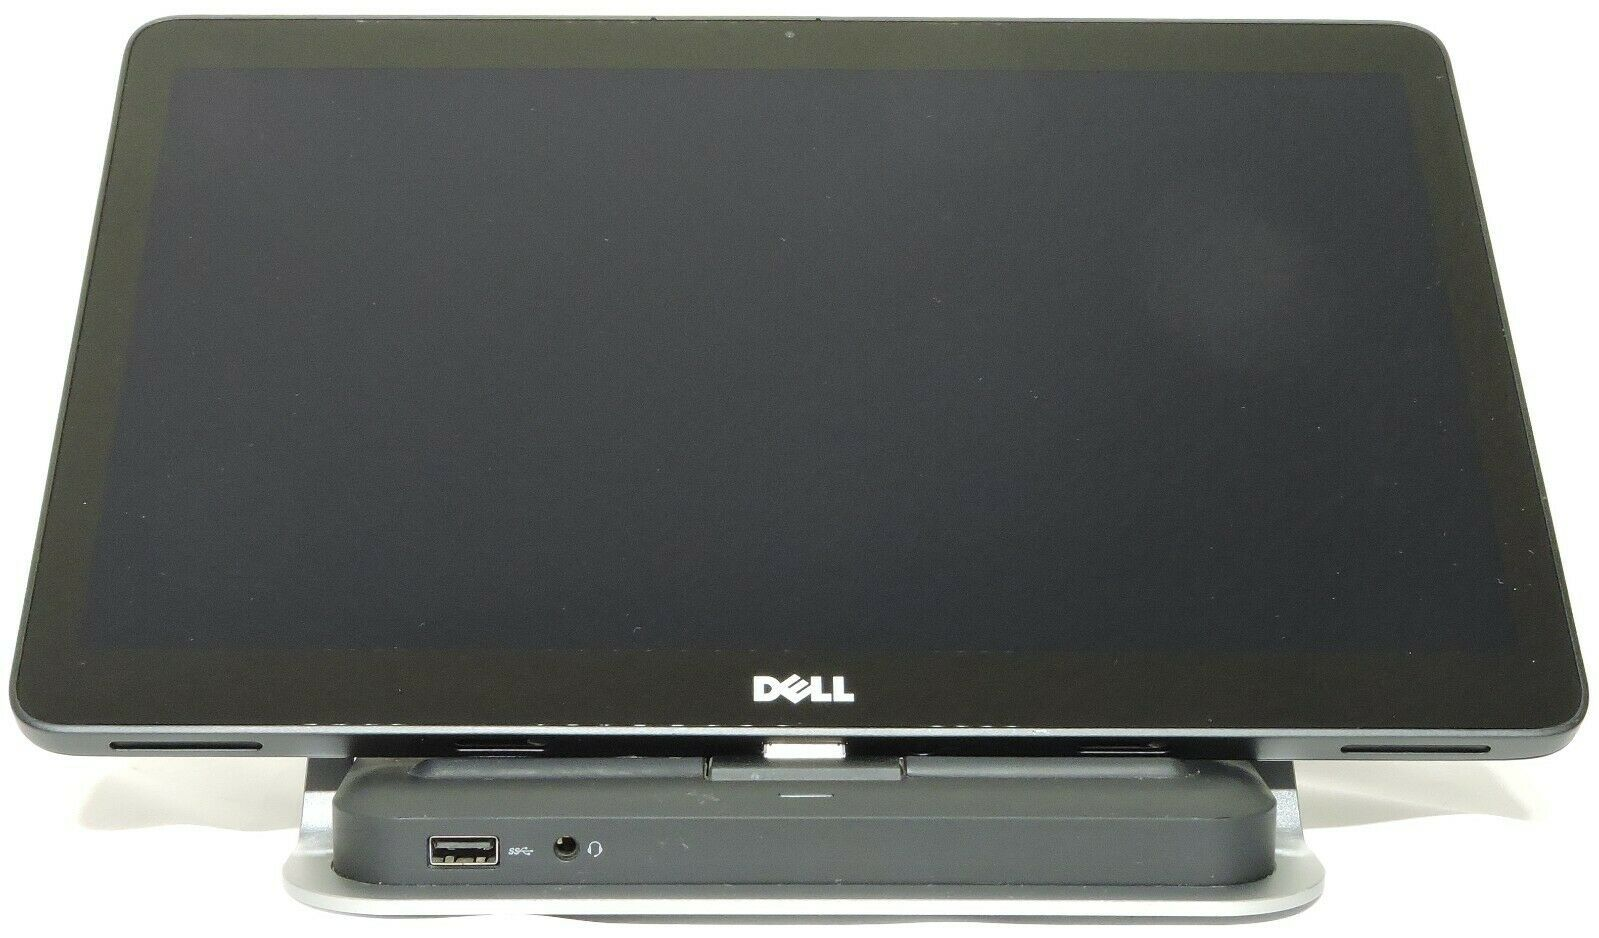 Primary image for Dell Latitude 7350 13.3in. 256GB SSD Intel Core M 8GB RAM FHD Dock PC Tablet